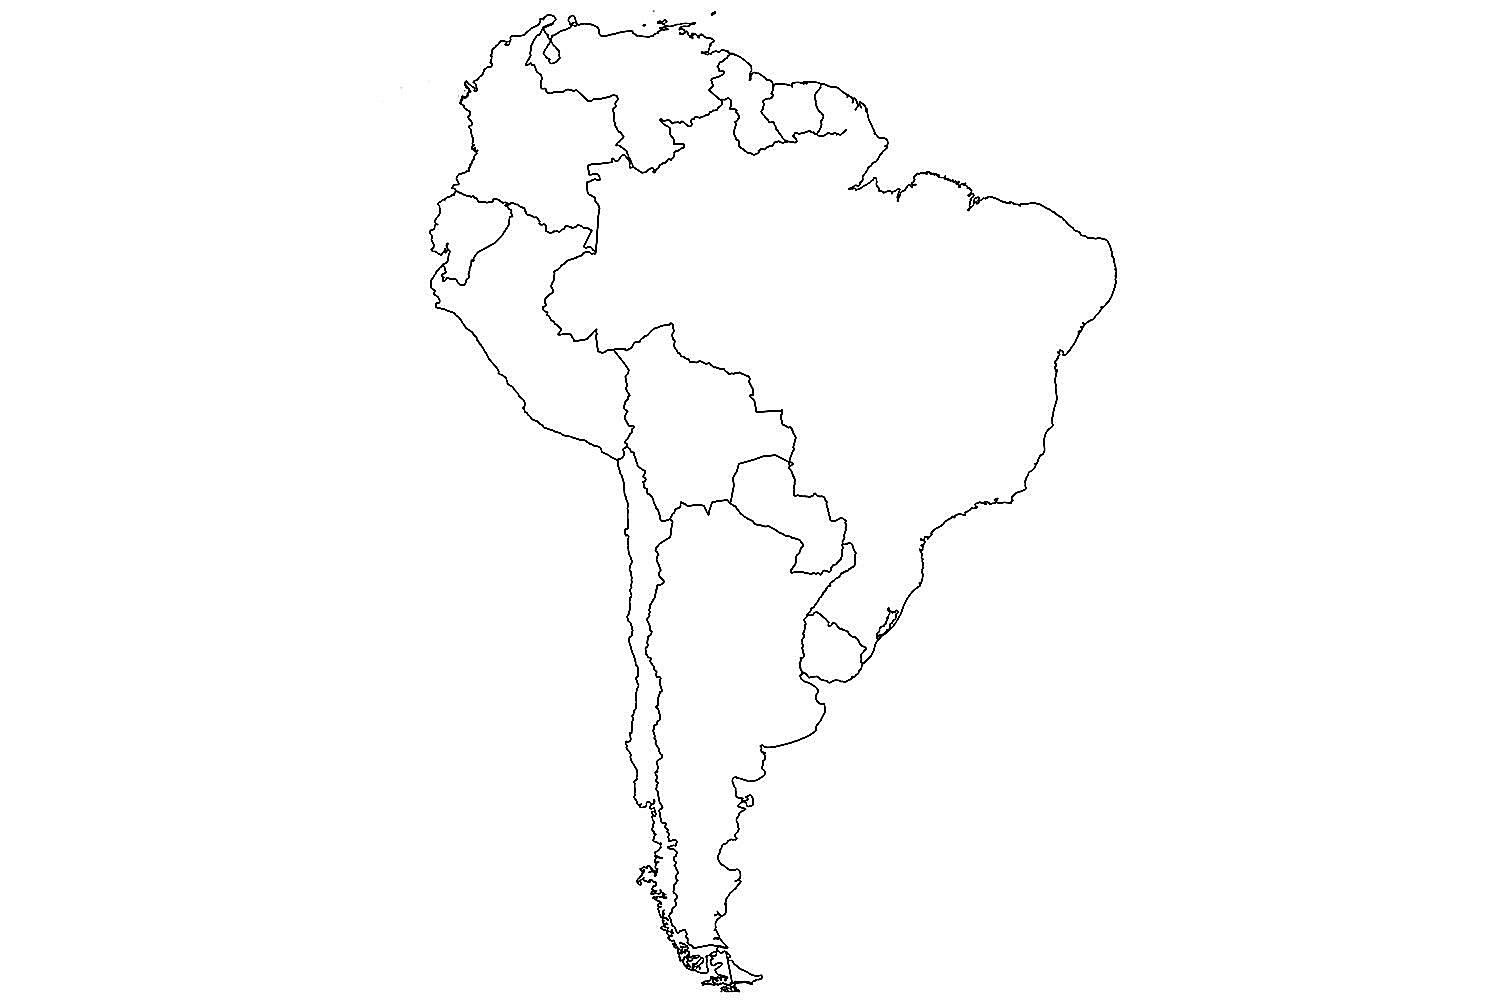 south america unlabeled map - Lamasa.jasonkellyphoto.co on map of us test, the western states and rivers map test, united states maps that are blank, 50 states test, blank states and capitals test, united states maps usa, west states test, united states capitals study guide, united states 6 regions worksheet, name the states test, midwest states test, united states and their capitals, united states 52 states, united states highway maps print, united states capitals worksheet, united states identification game, united states of america, united states blank worksheet, us map fill in test, 48 states map test,